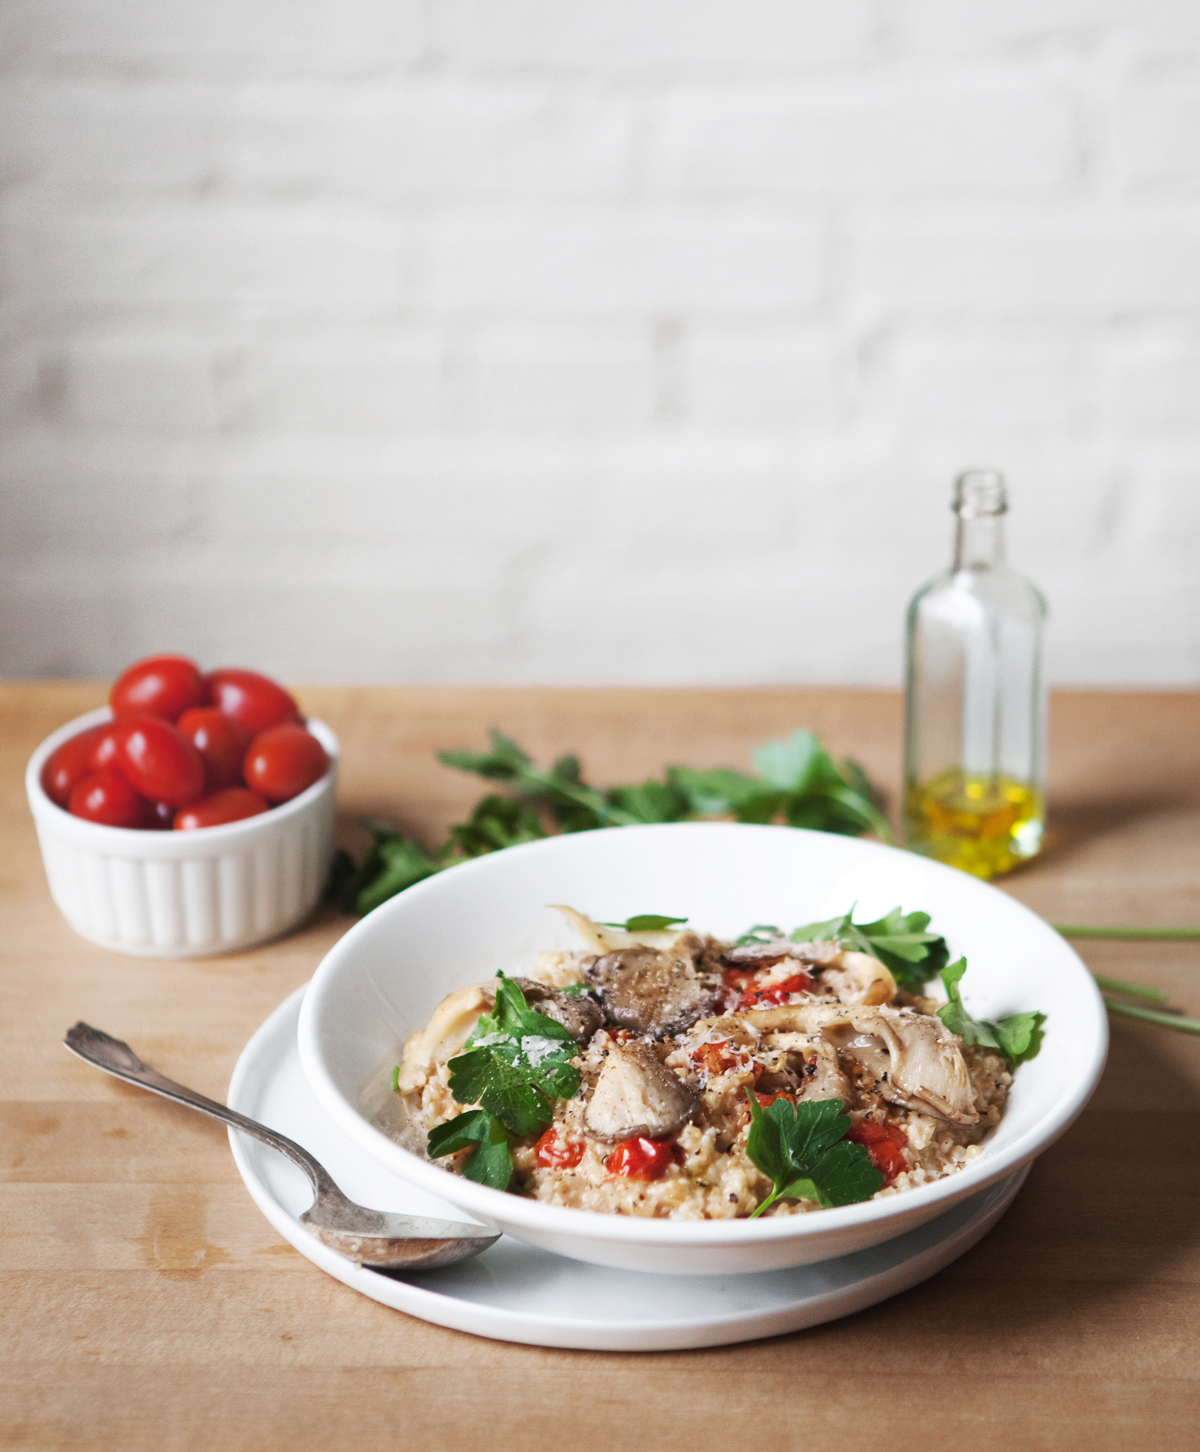 Savory-Oats-with-Roasted-Tomatoes-+-Oyster-Mushrooms.jpg